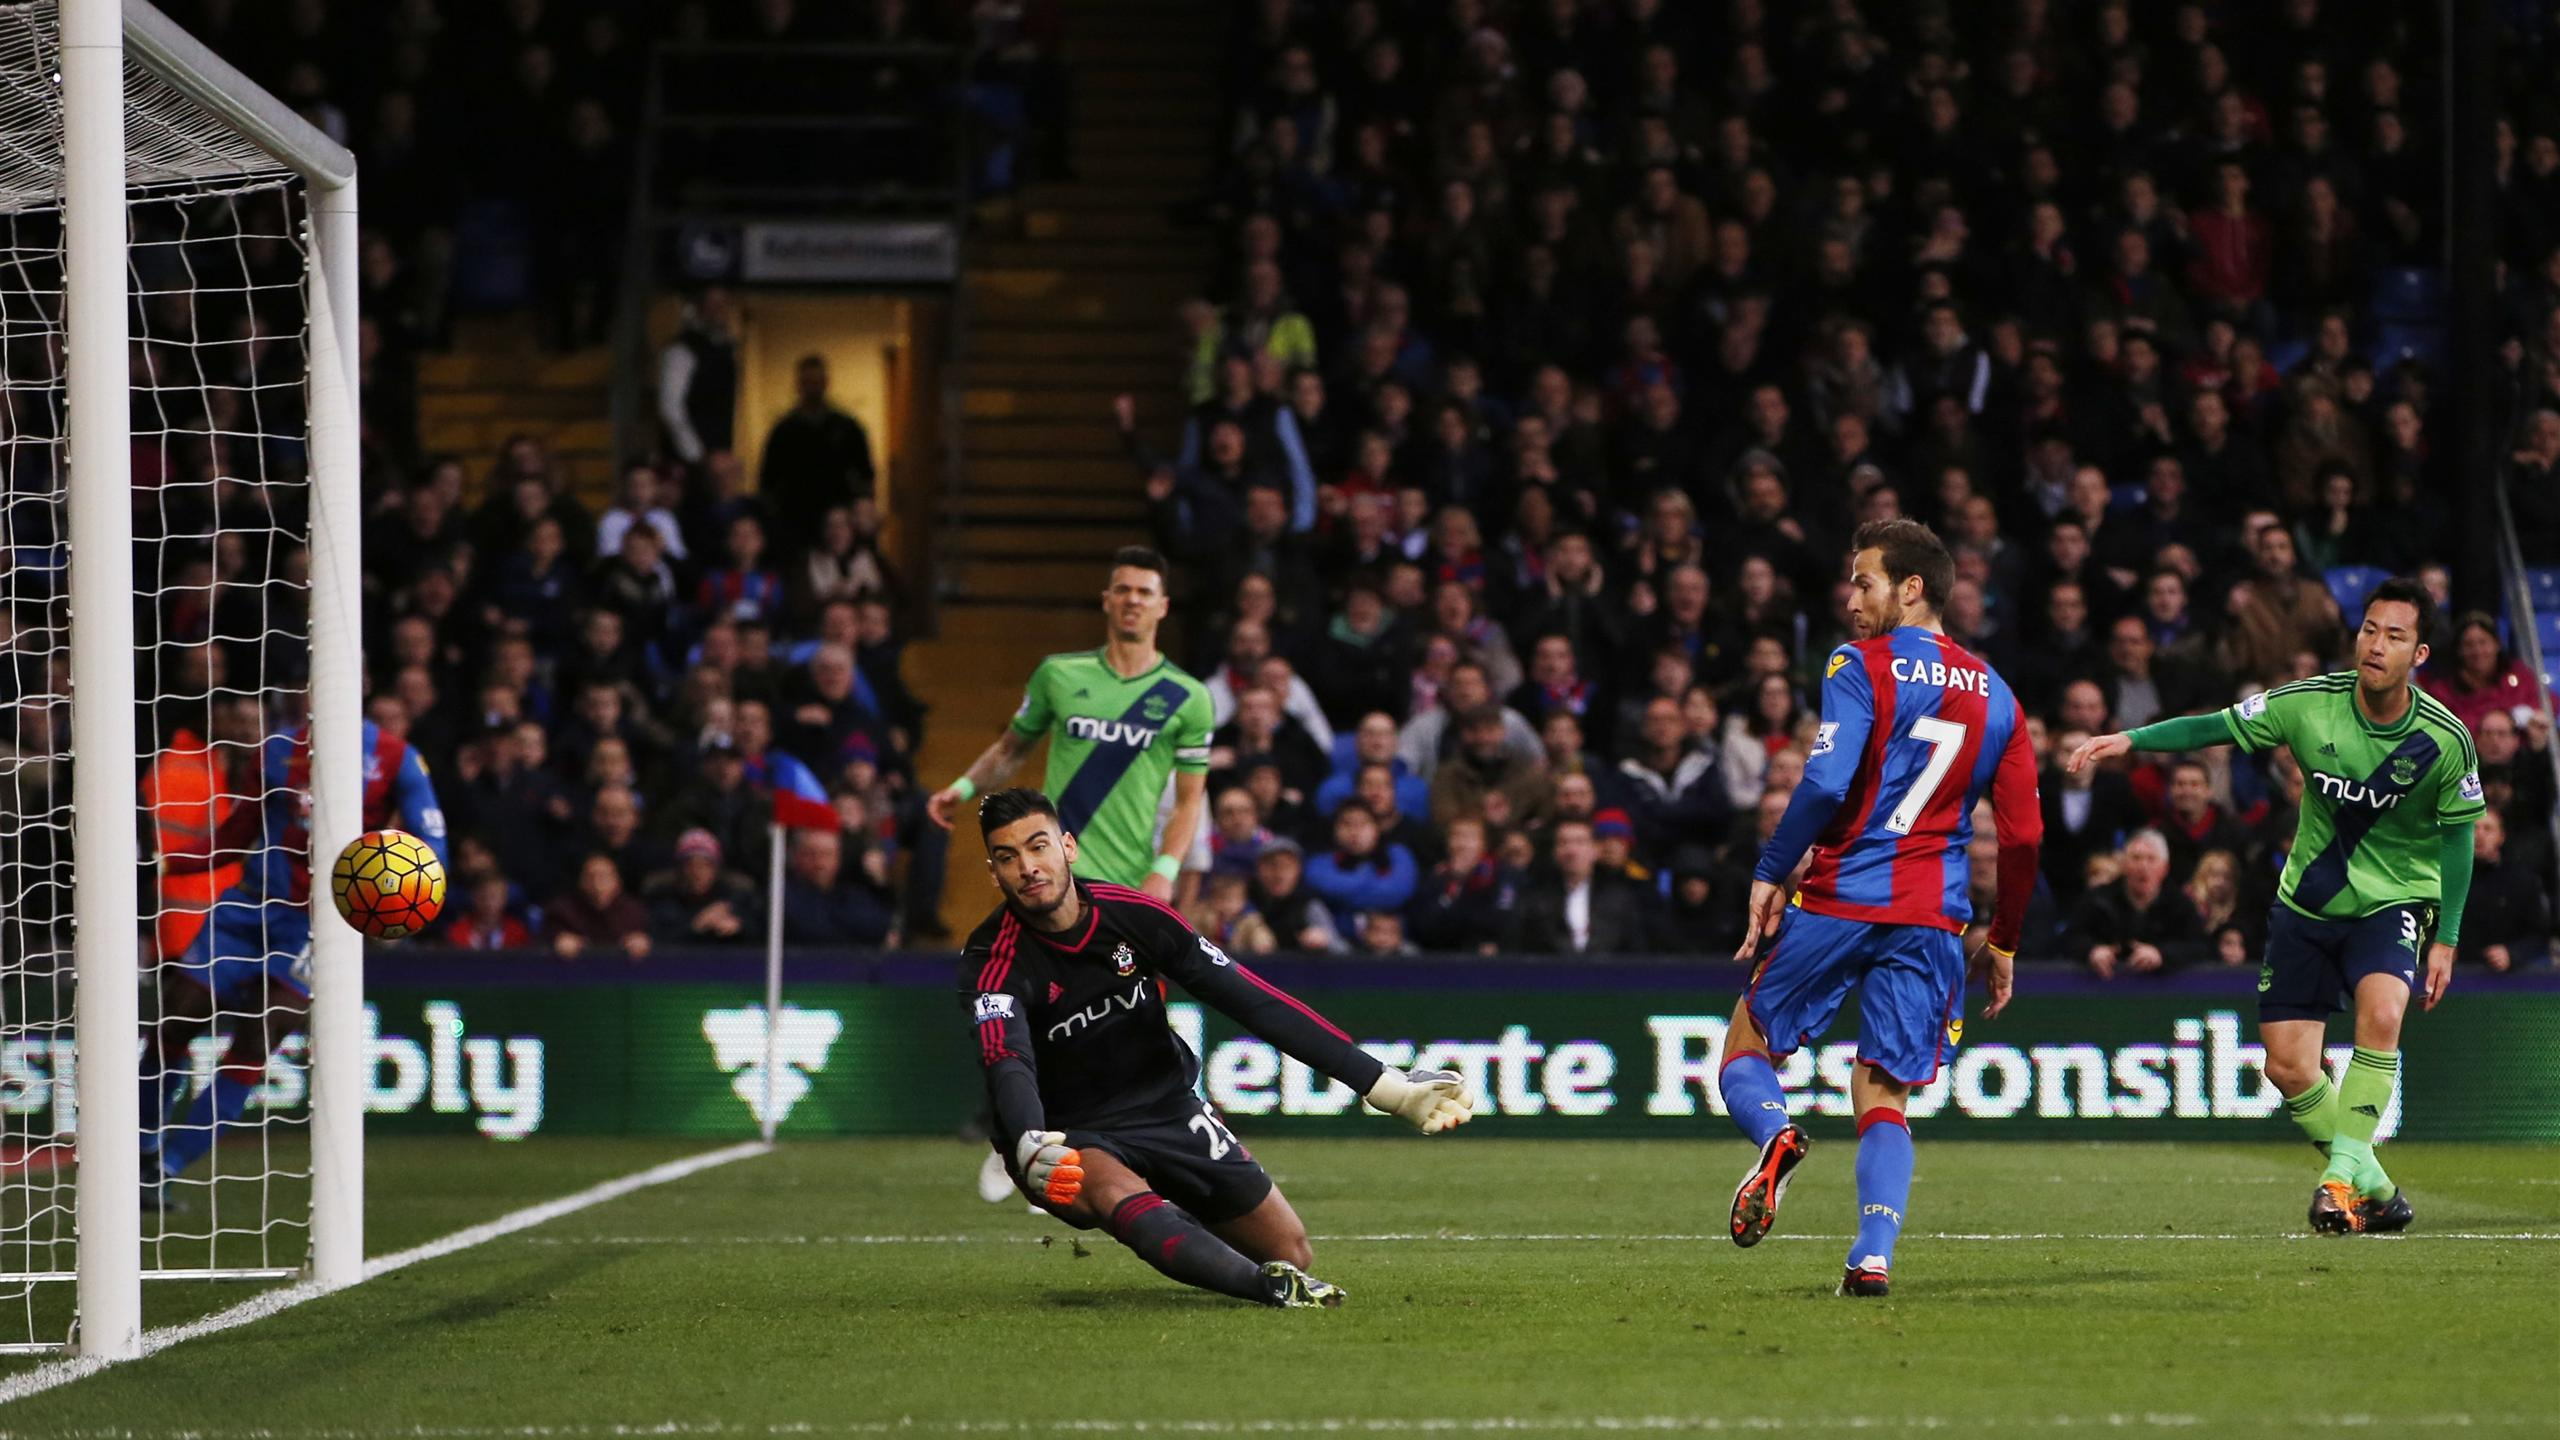 Yohan Cabaye scores for Crystal Palace against Southampton